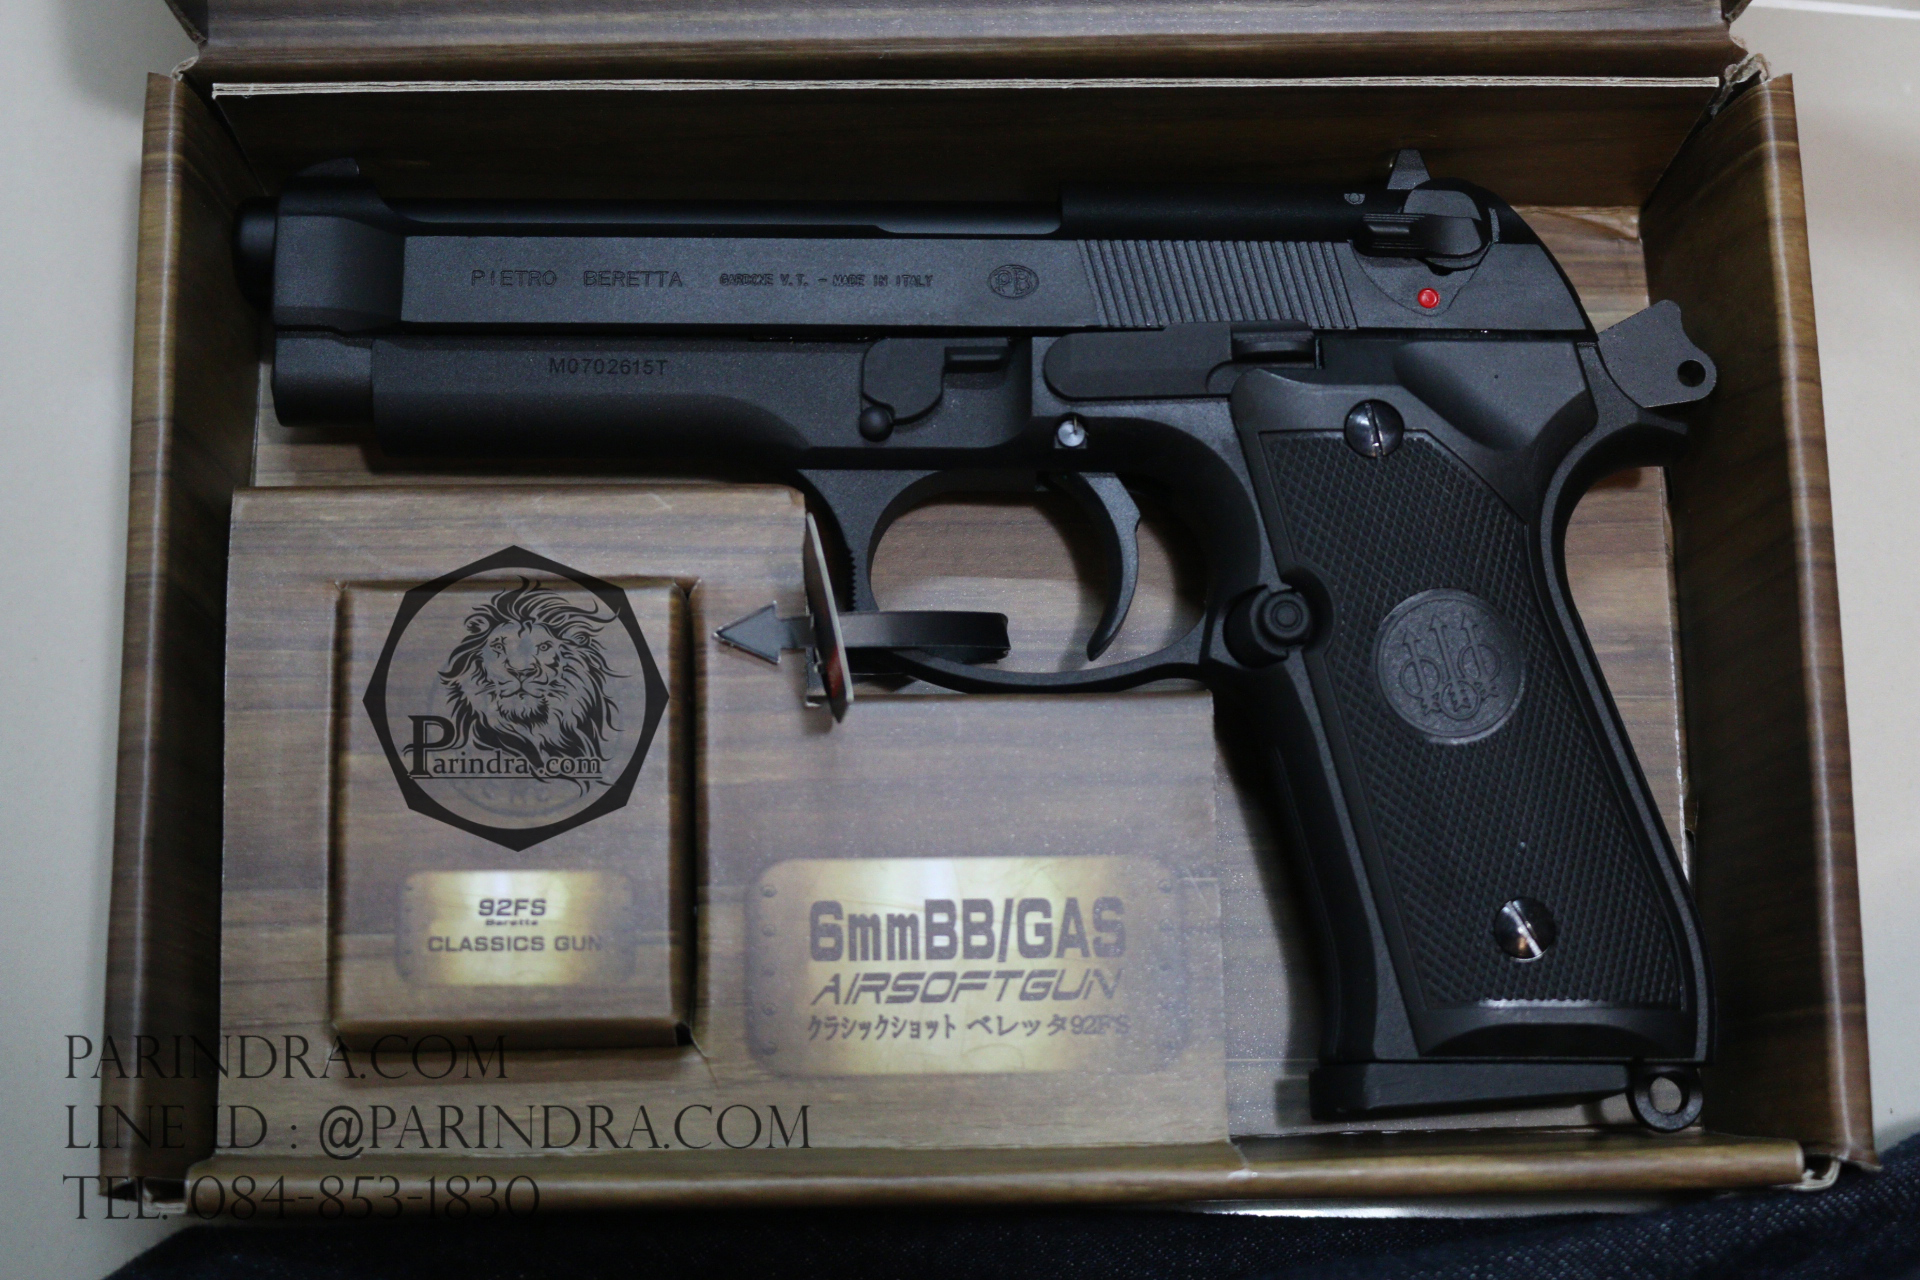 ปืน BBgun Berretta 92FS Black 6 mm. AirSoftGun